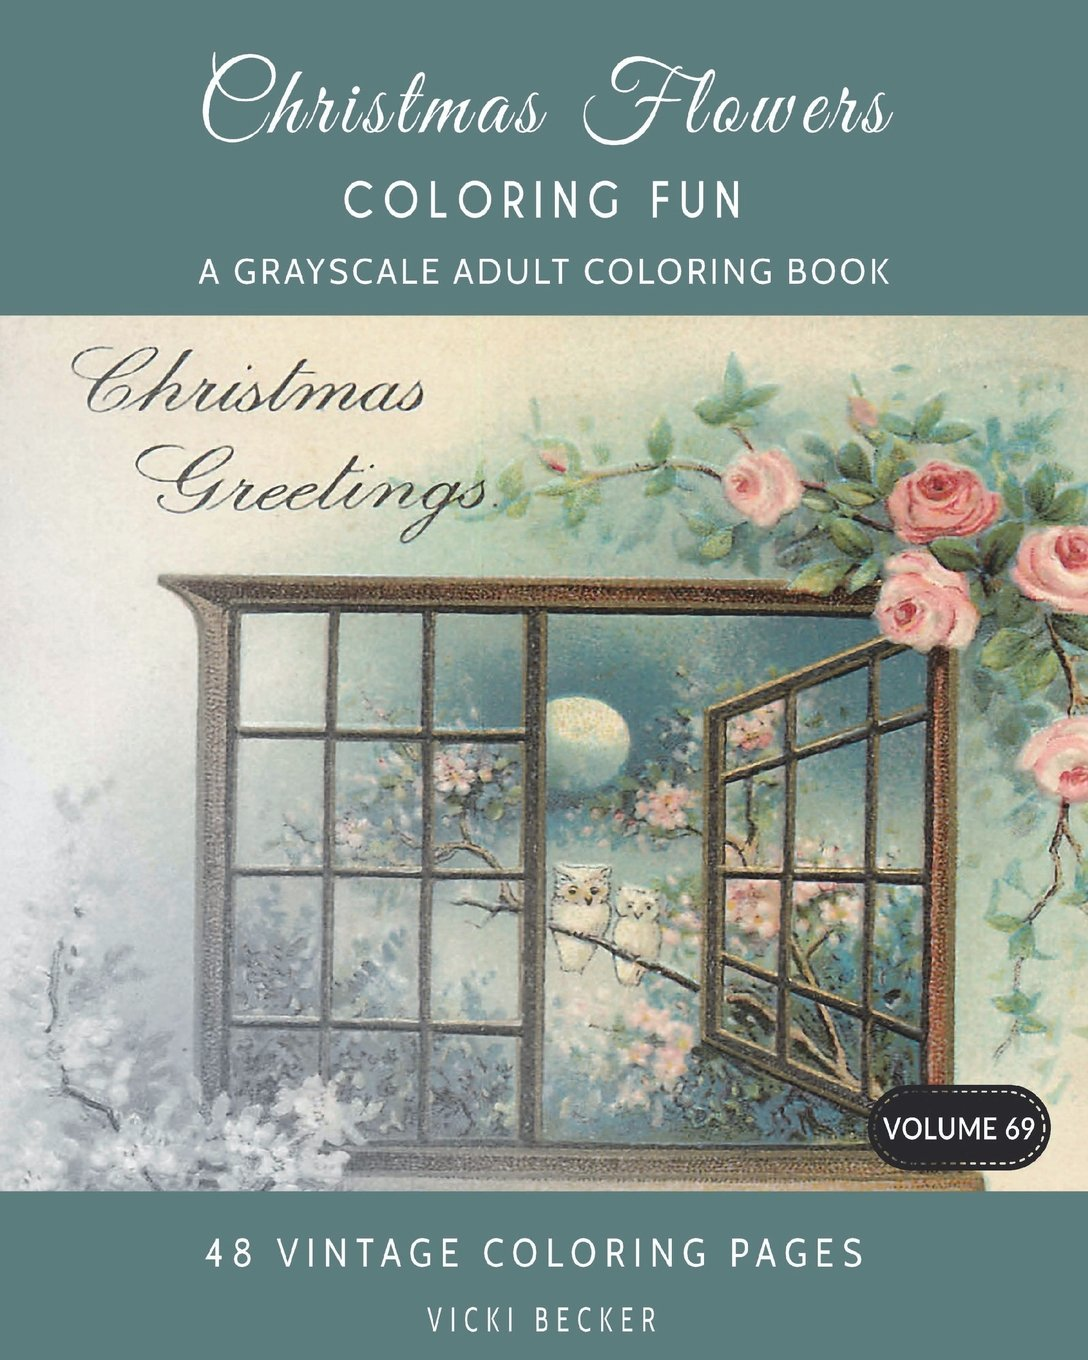 Christmas Flowers: A Grayscale Adult Coloring Book (Grayscale Coloring Books) (Volume 69) ebook